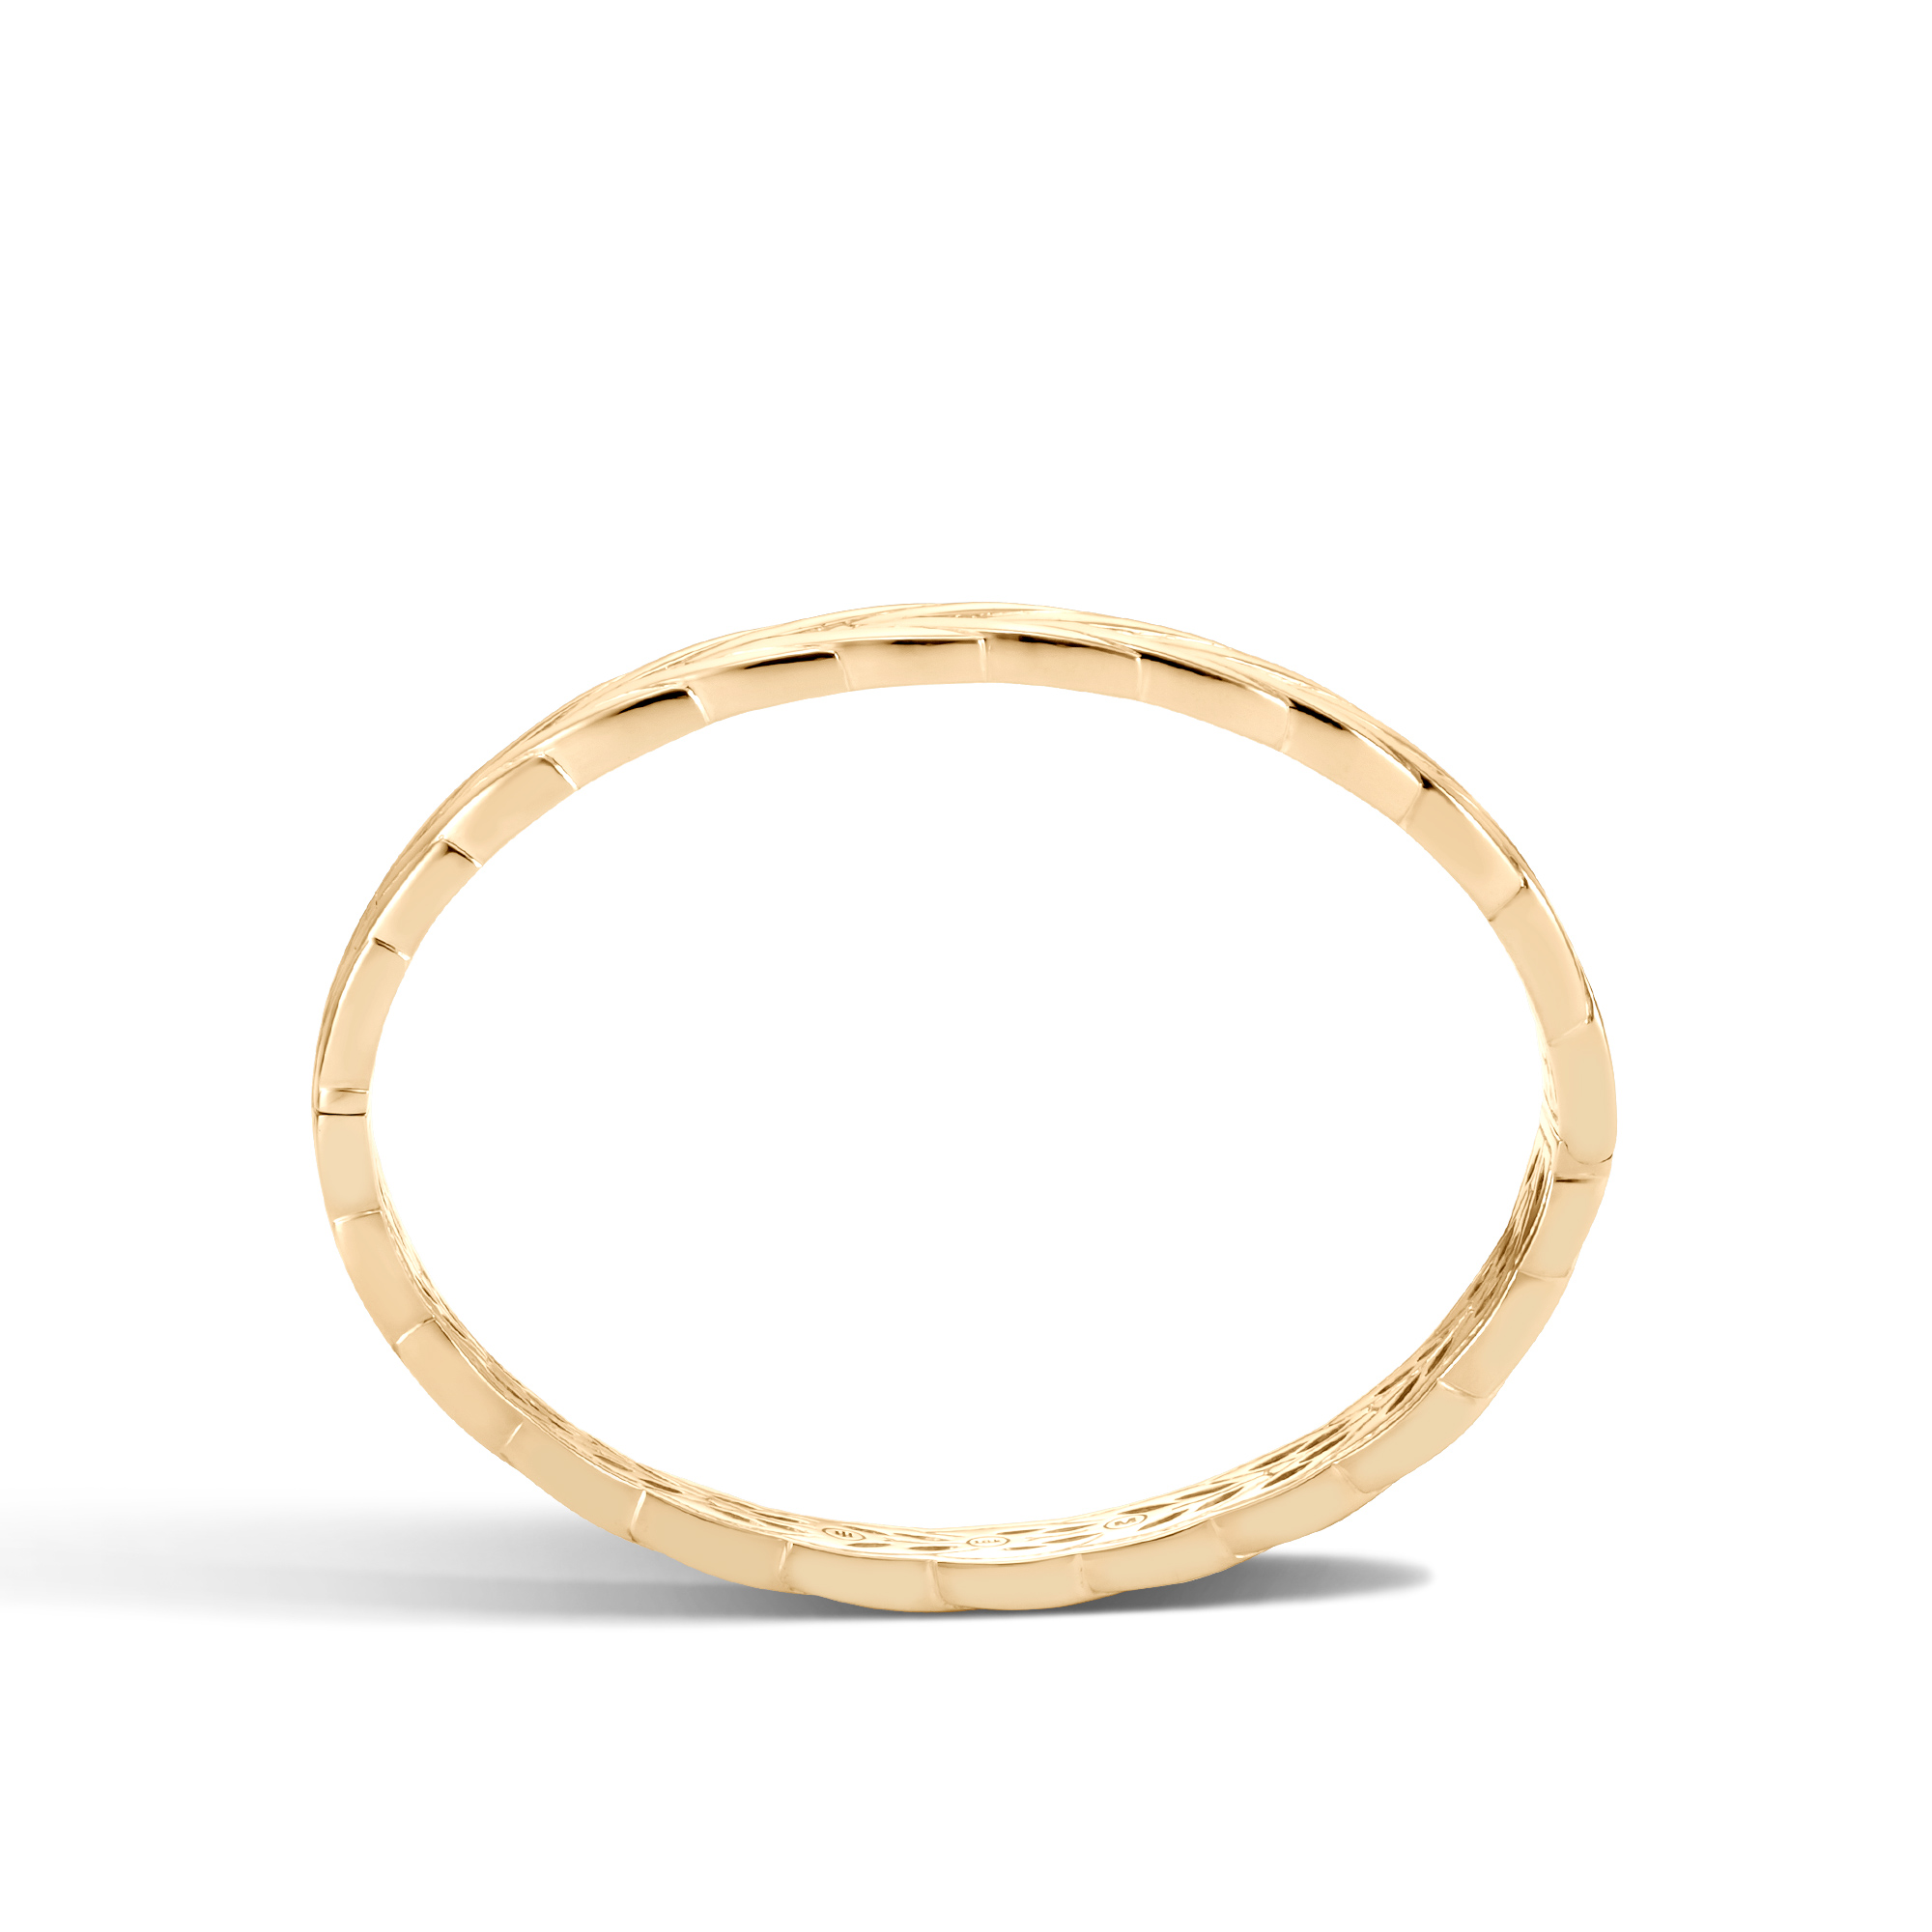 Modern Chain 8MM Hinged Bangle in 18K Gold, , large